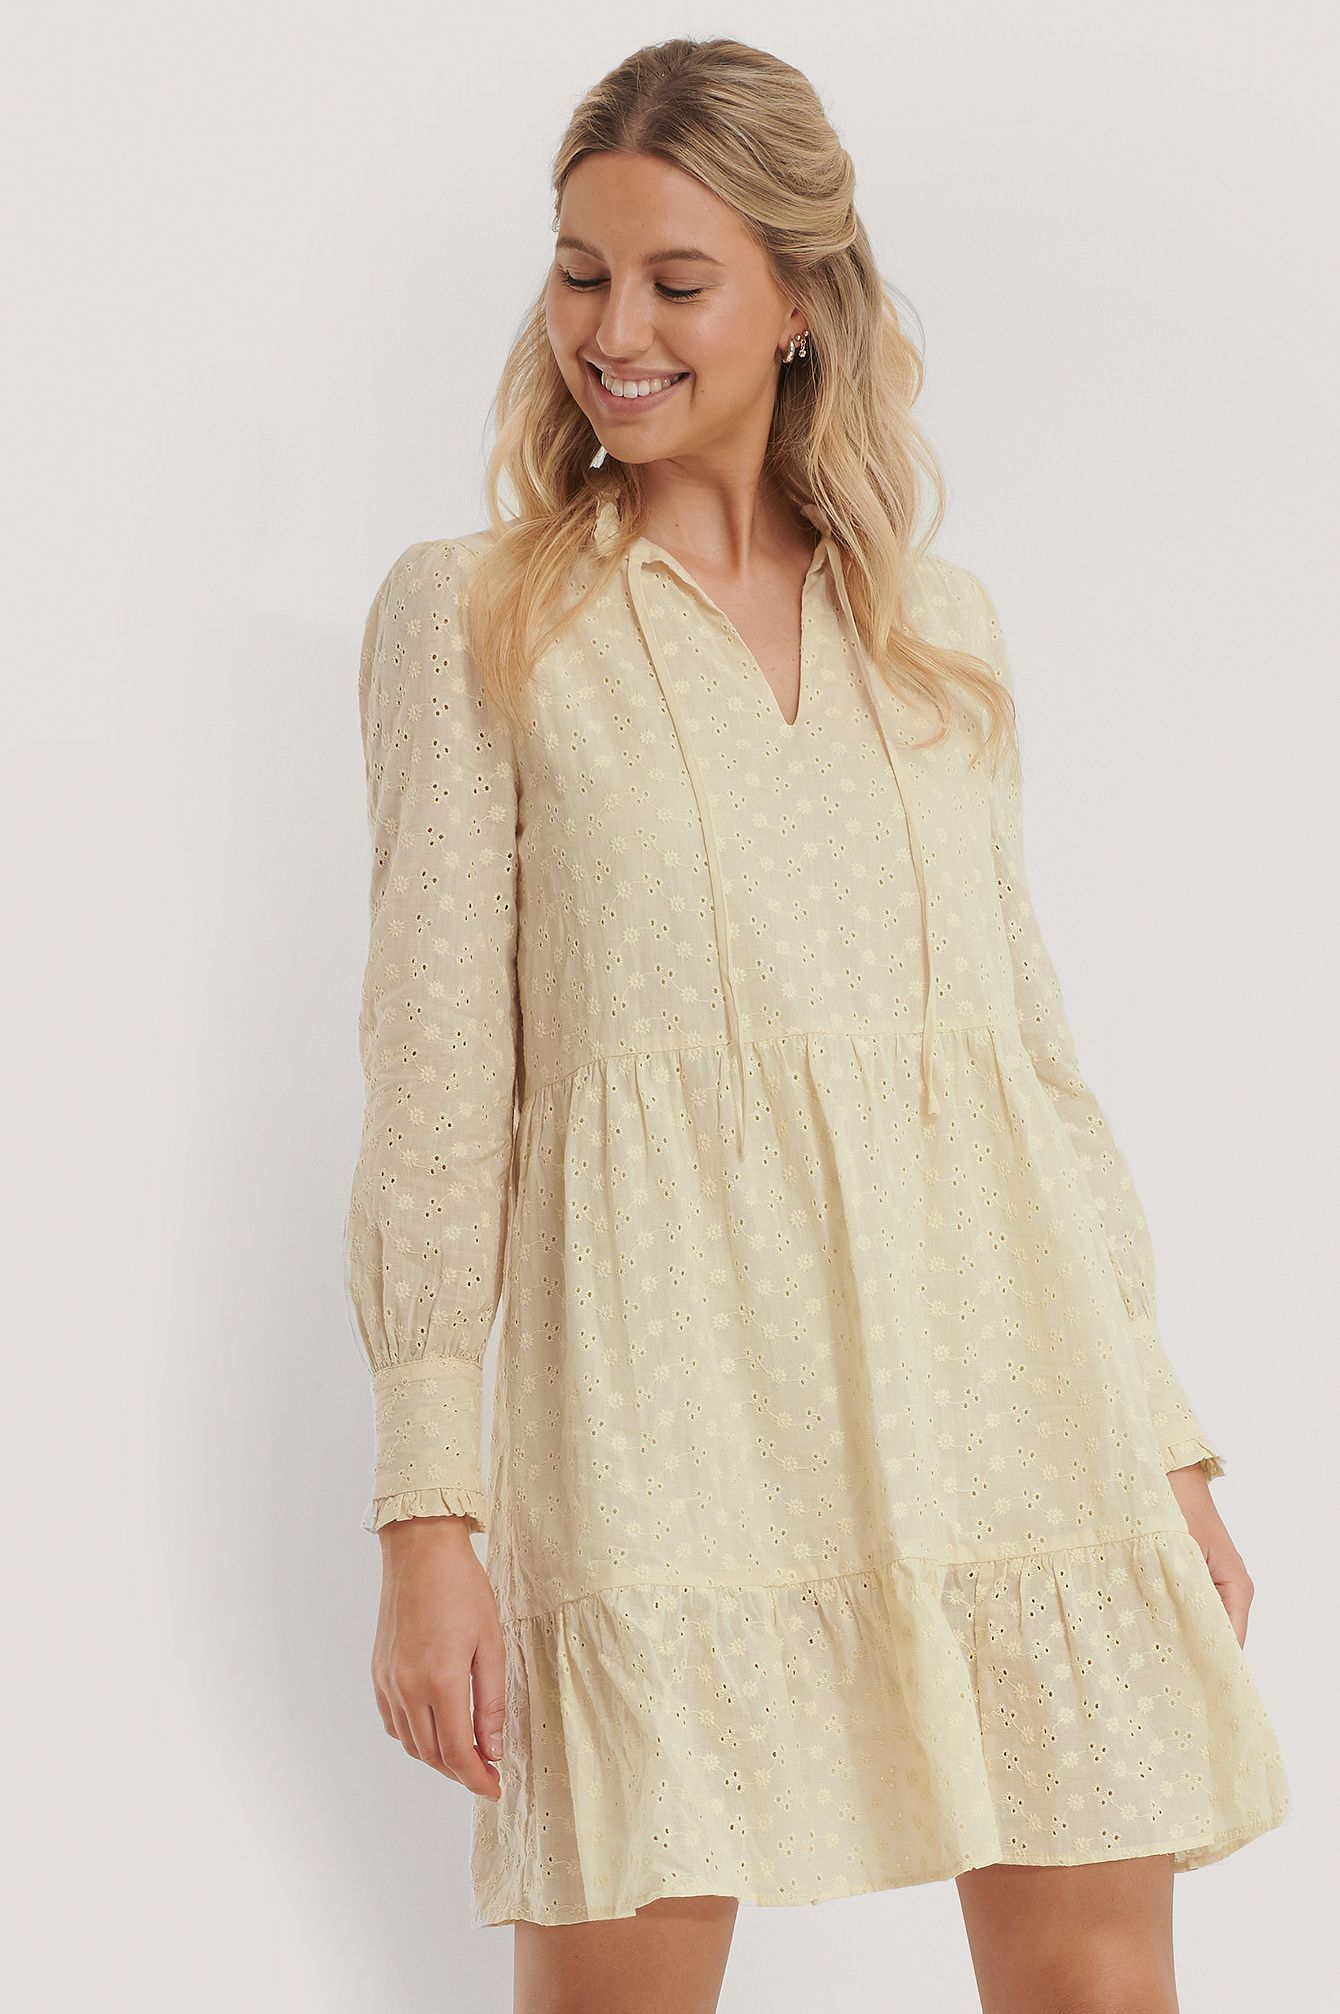 A-Förmiges Kleid Mit Blumenstickerei in 19  Tunic tops, Fashion